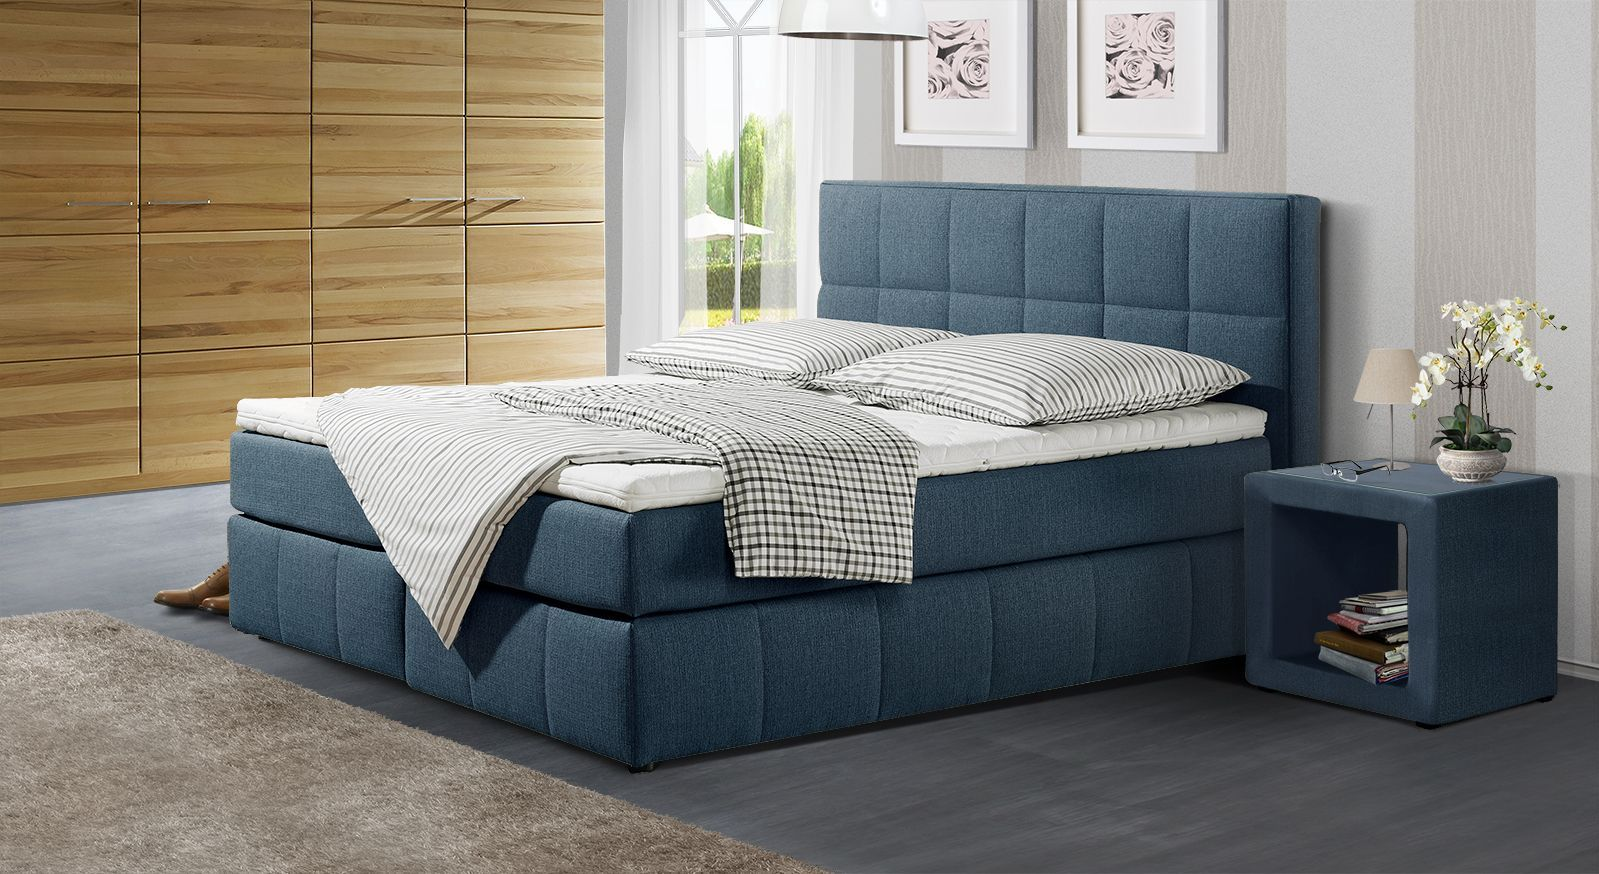 Boxspringbett Belfort in blauem Webstoff